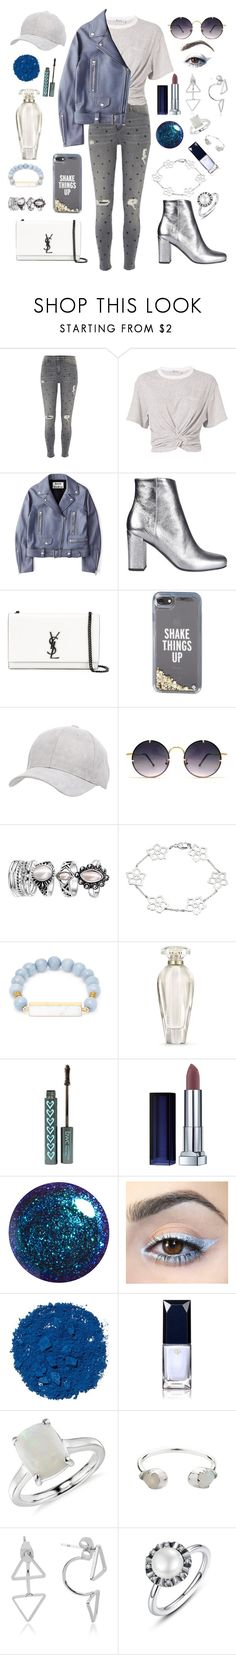 """Untitled #112"" by abglo ❤ liked on Polyvore featuring River Island, T By Alexander Wang, Acne Studios, Yves Saint Laurent, Kate Spade, Charlotte Russe, Spitfire, Elise M., Victoria's Secret and Maybelline"